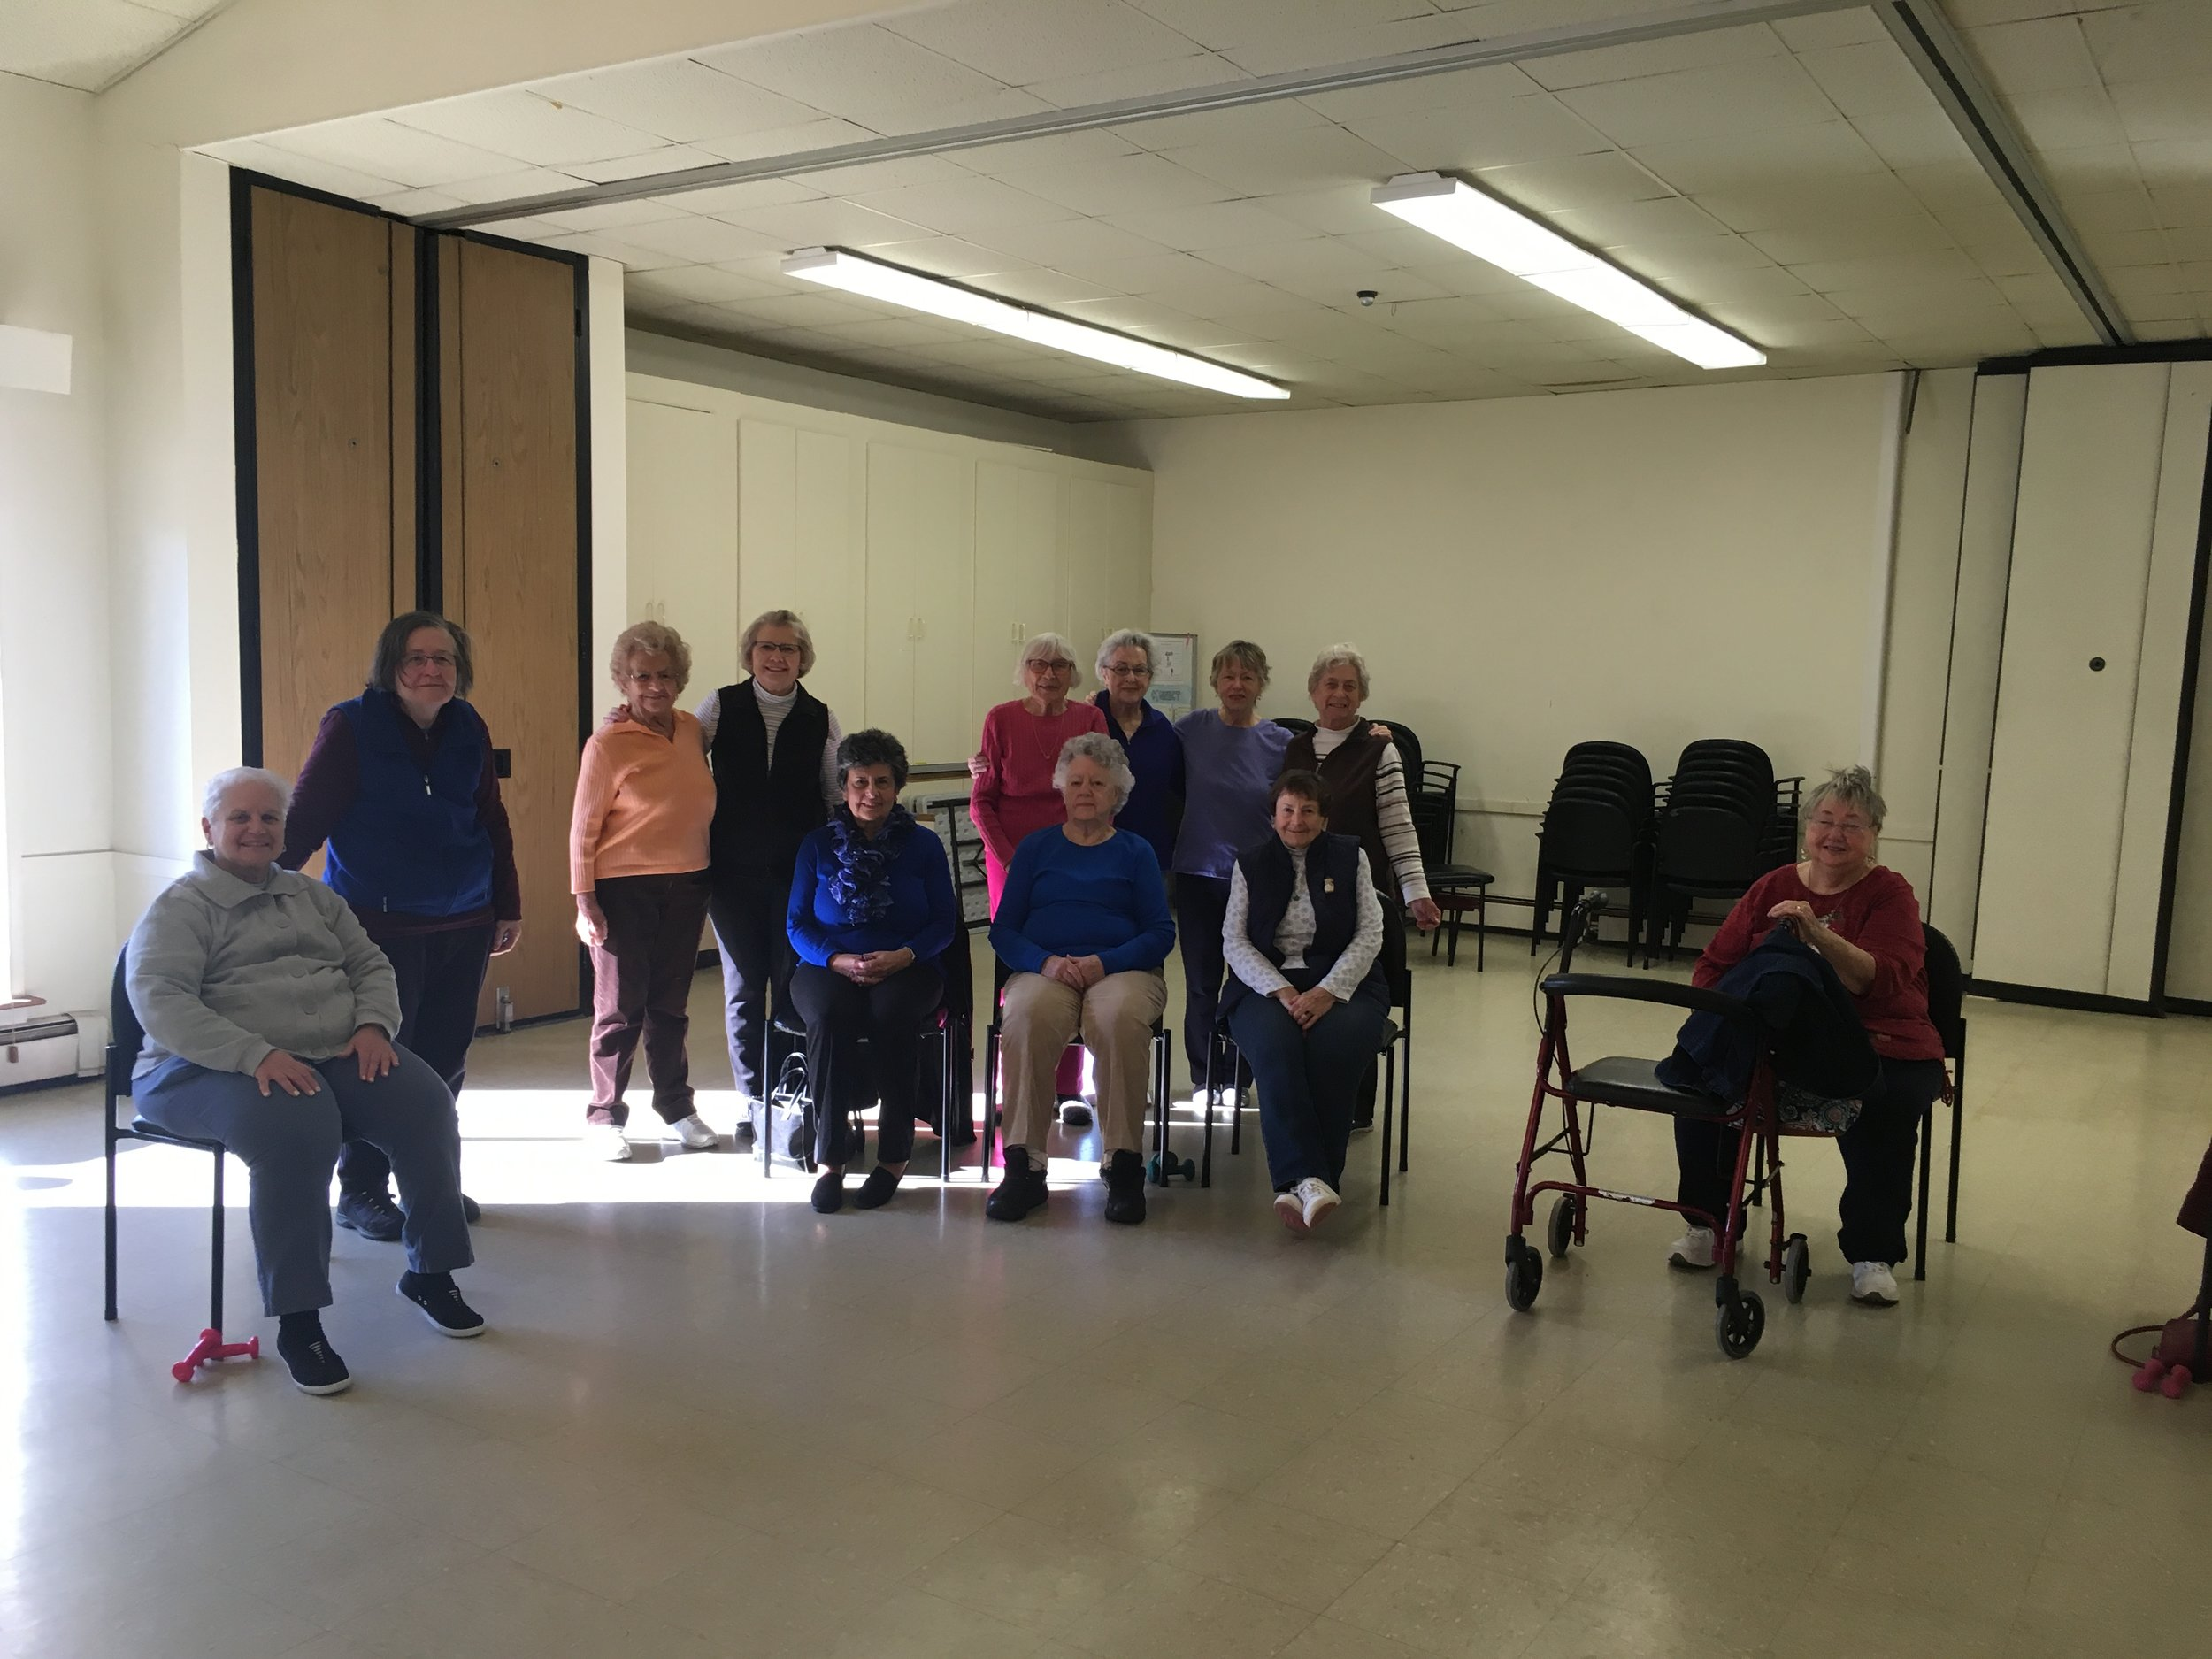 Some of our Senior Exercise class participants!